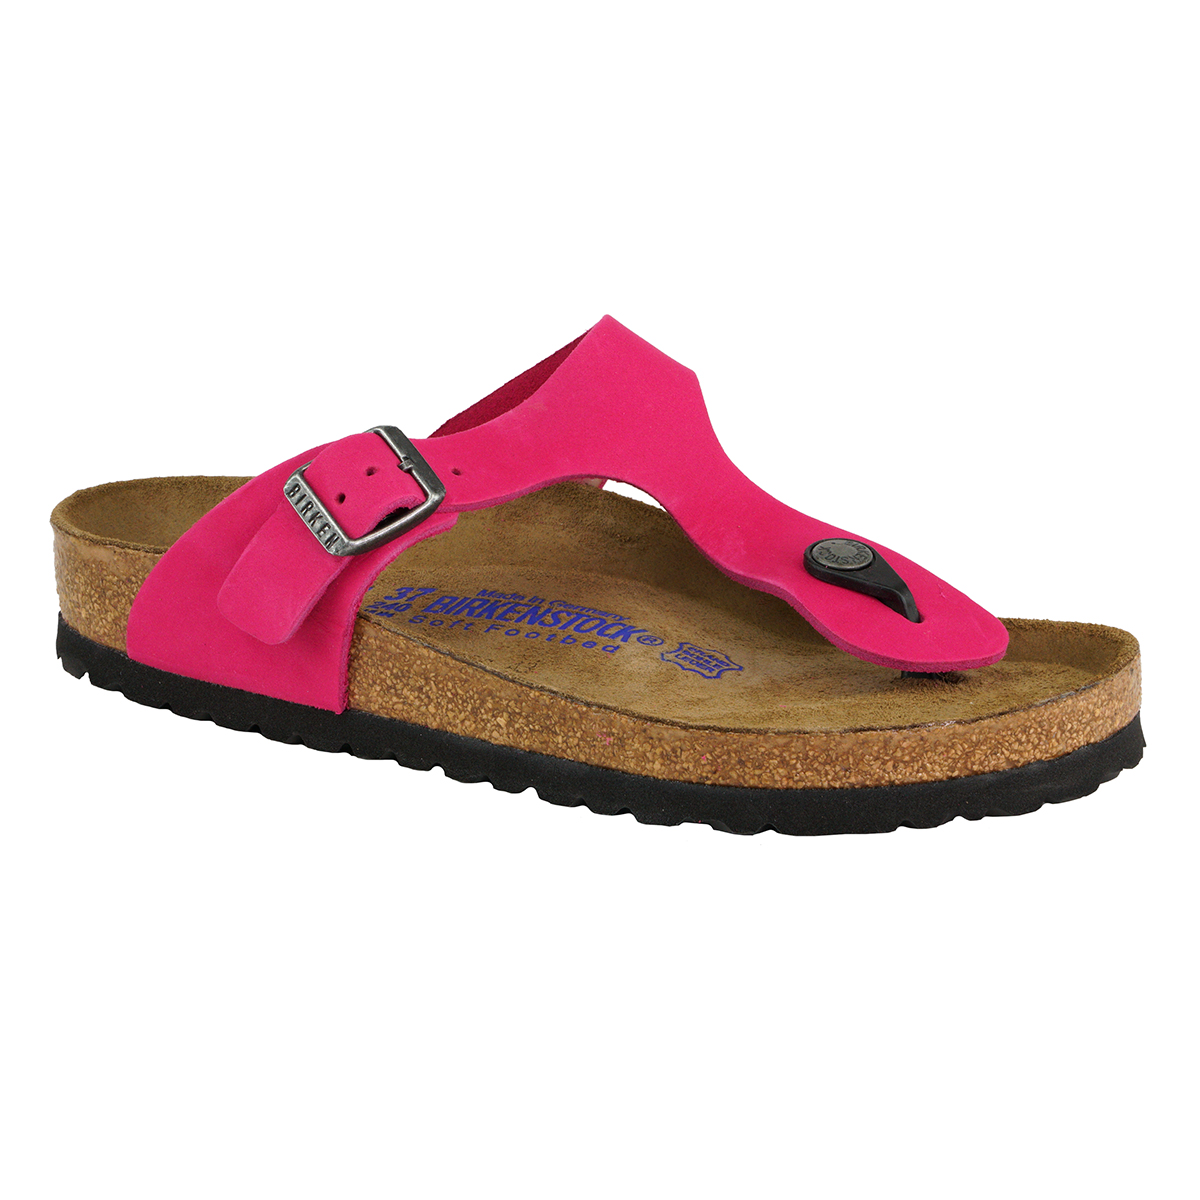 e2a80726c3c Details about Birkenstock Gizeh Soft Footbed Leather Sandals Pink 38 N